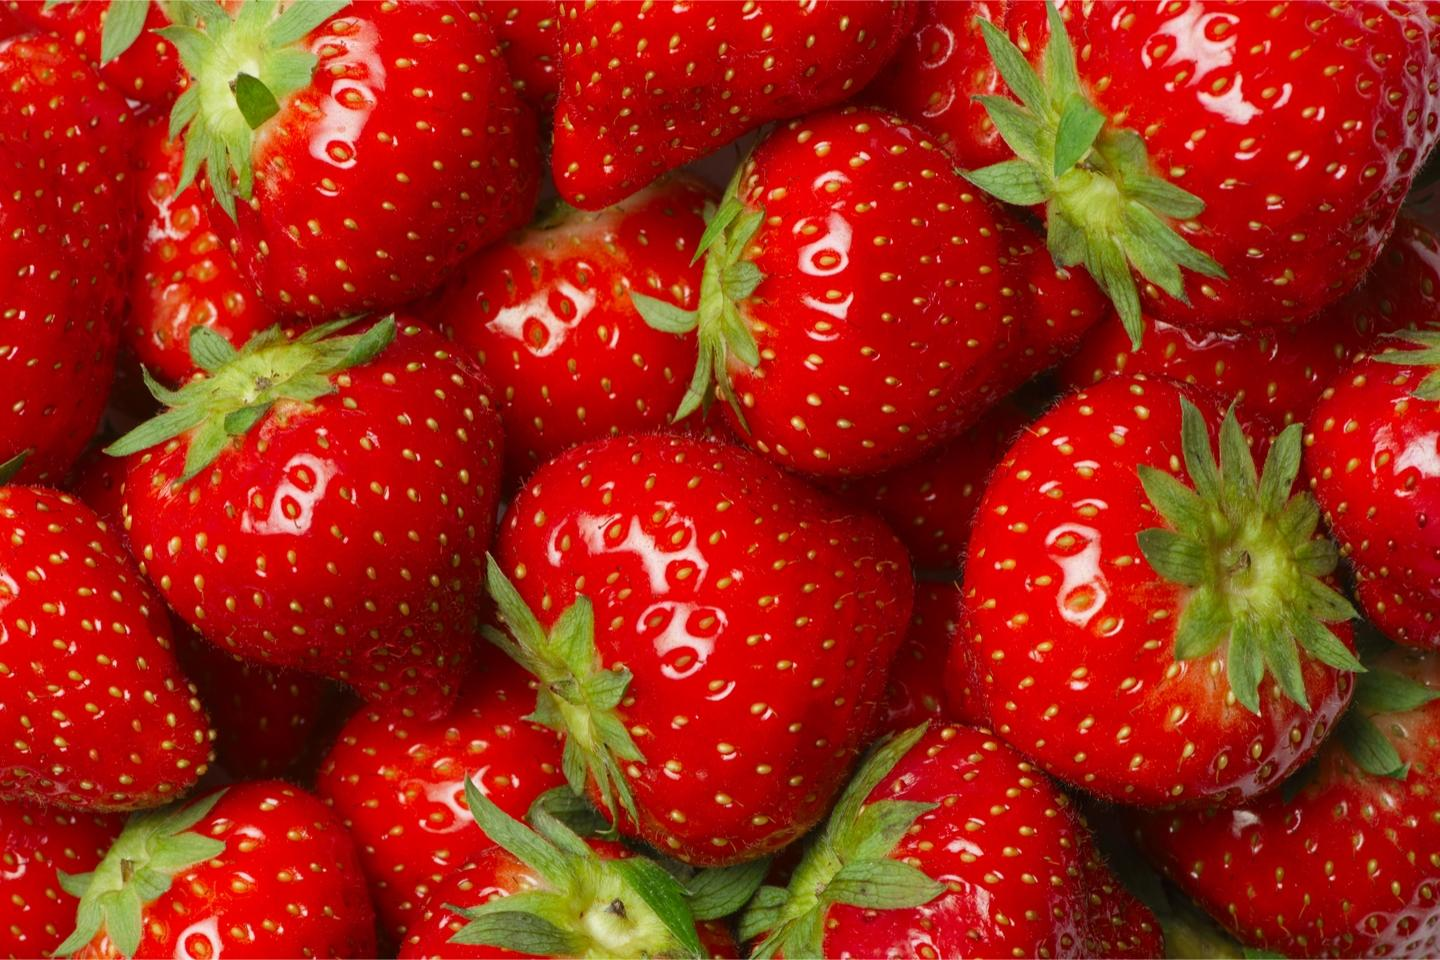 What #smashastrawb taught us about authentic customer-centricity